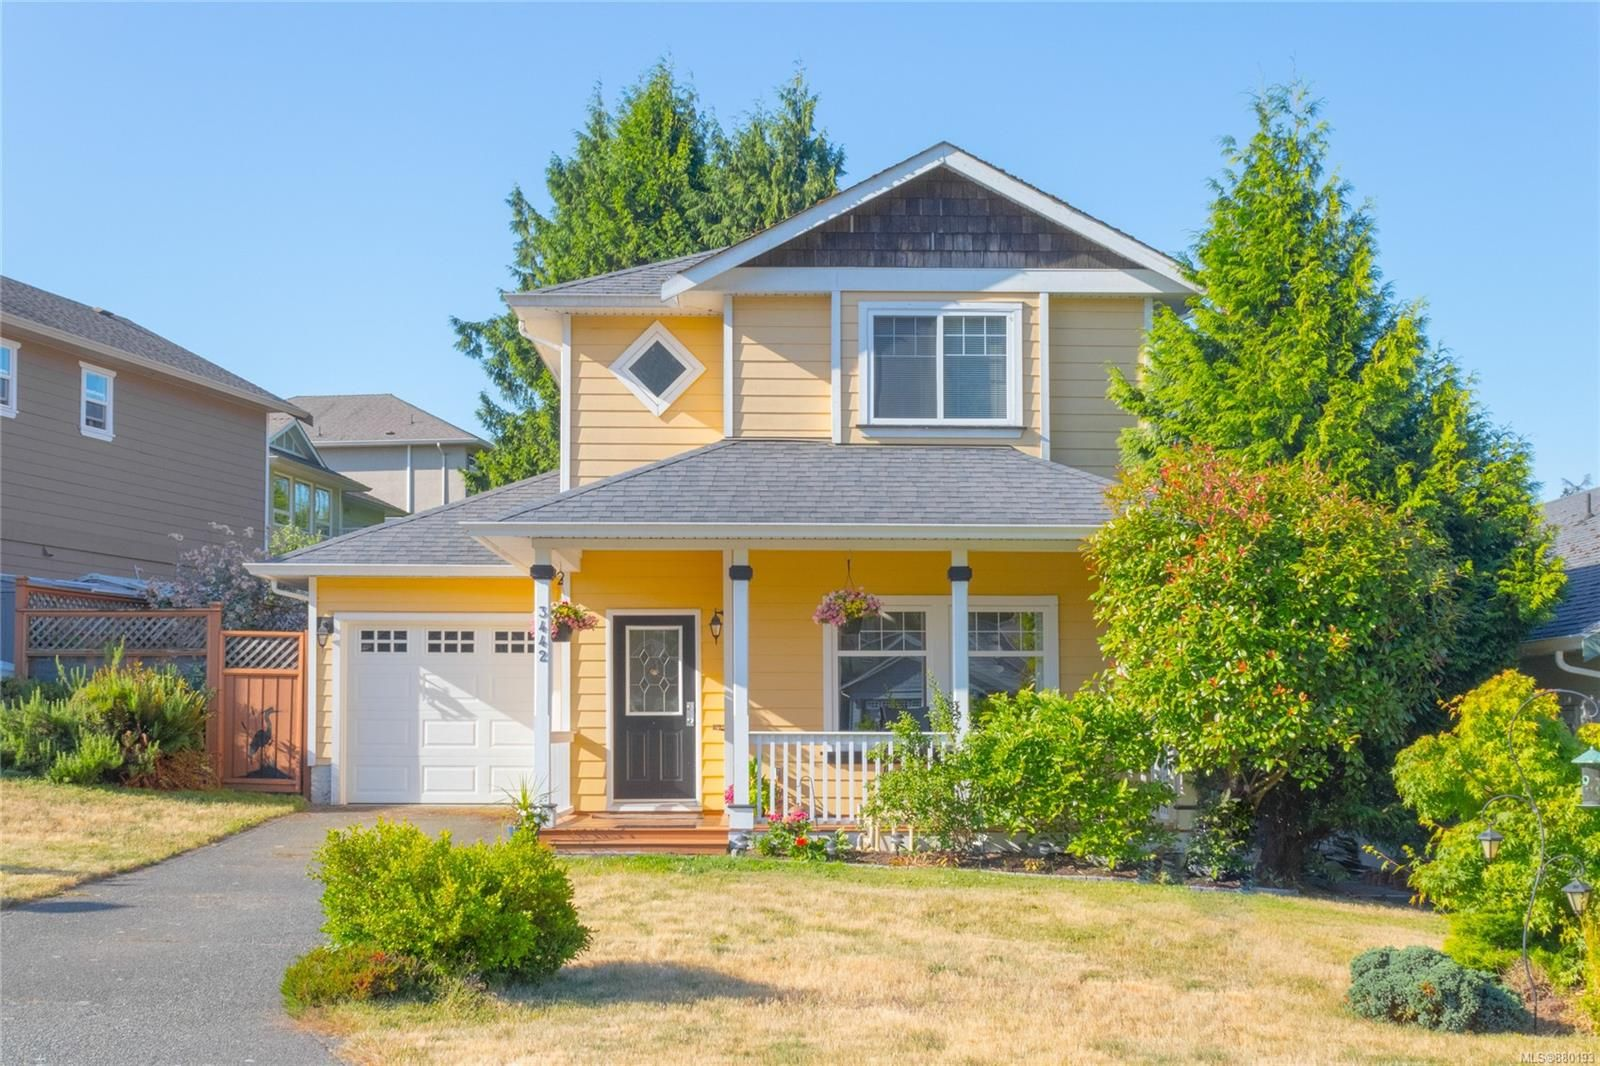 Main Photo: 3442 Pattison Way in : Co Triangle House for sale (Colwood)  : MLS®# 880193